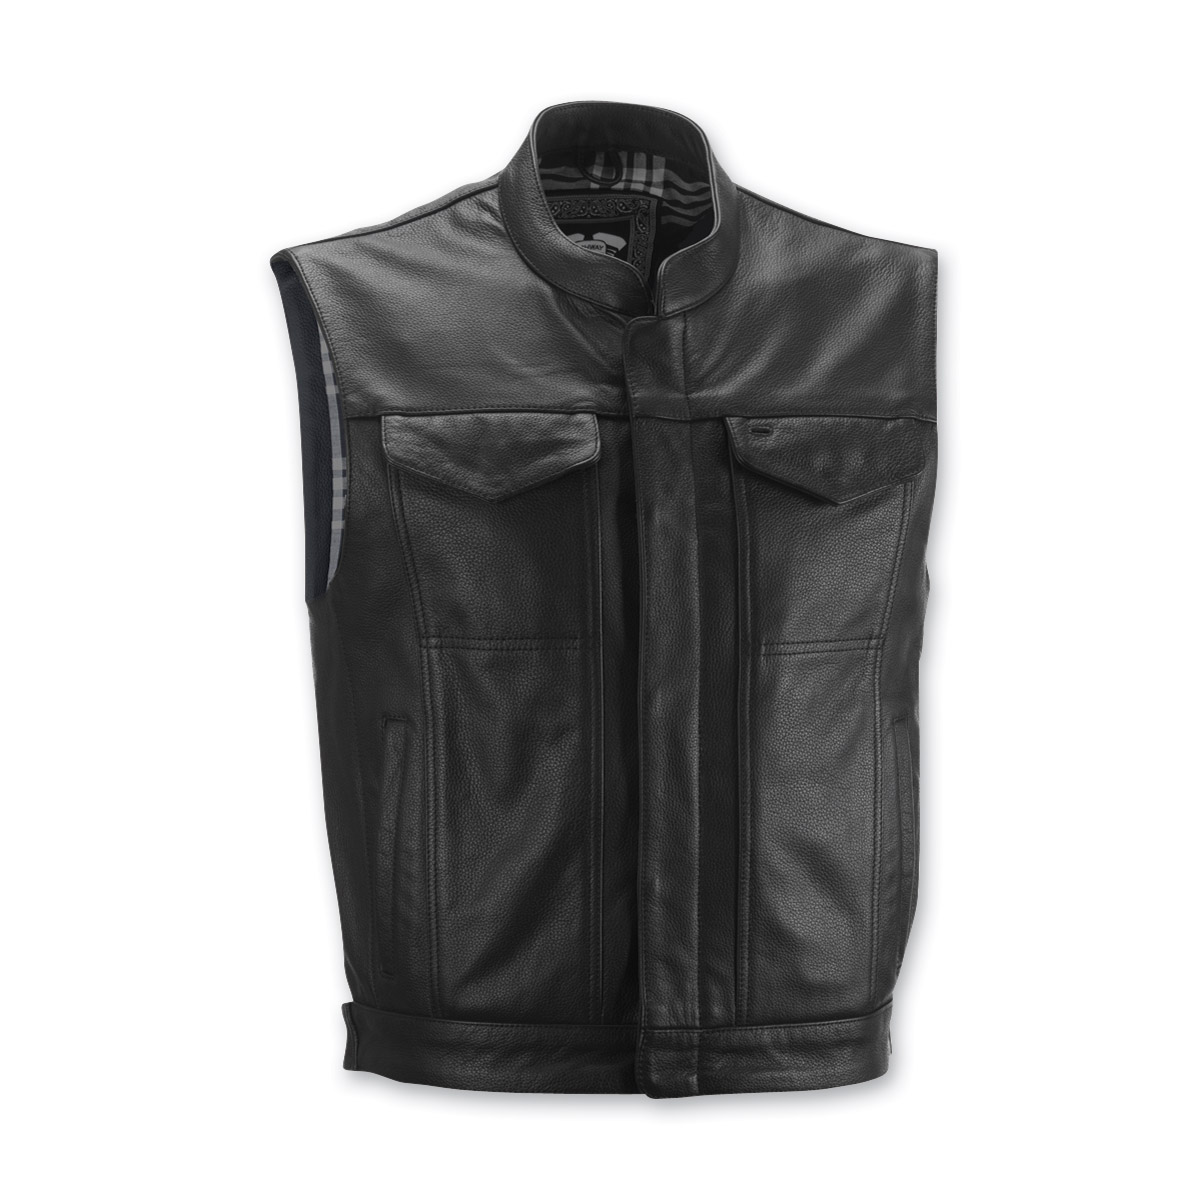 highway 21 menu0027s magnum black leather vest NNEDDEI